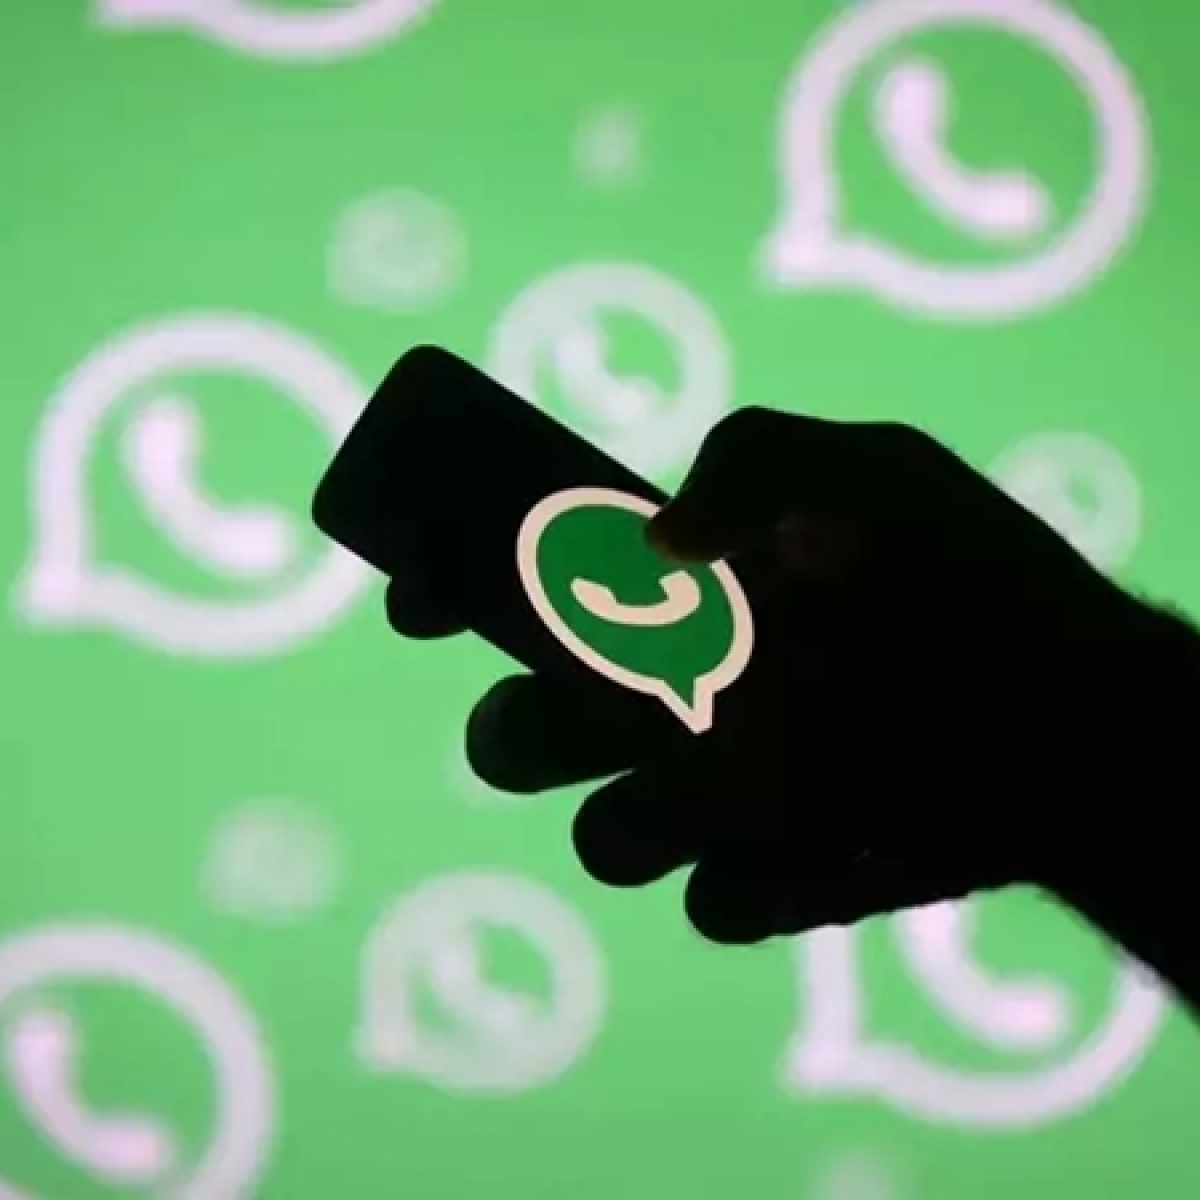 'WhatsApp does not cooperate citing end-to-end encryption', says RS Panel on child pornography